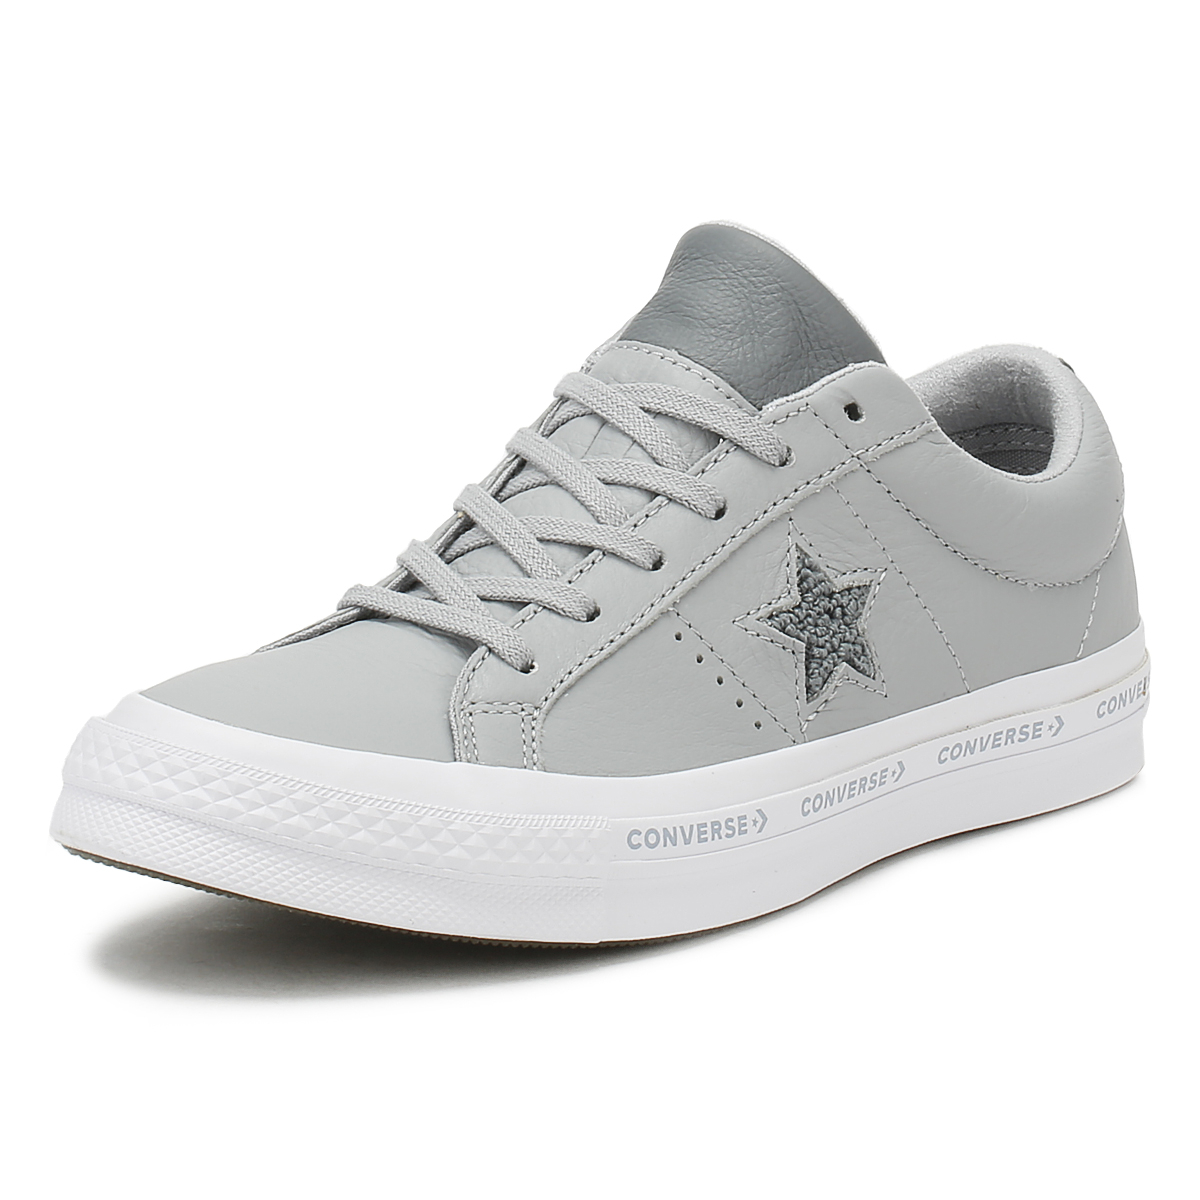 68201e2801f53f Details about Converse One Star Mens Ox Trainers Wolf Grey Pinstripe  Leather Skate Shoes